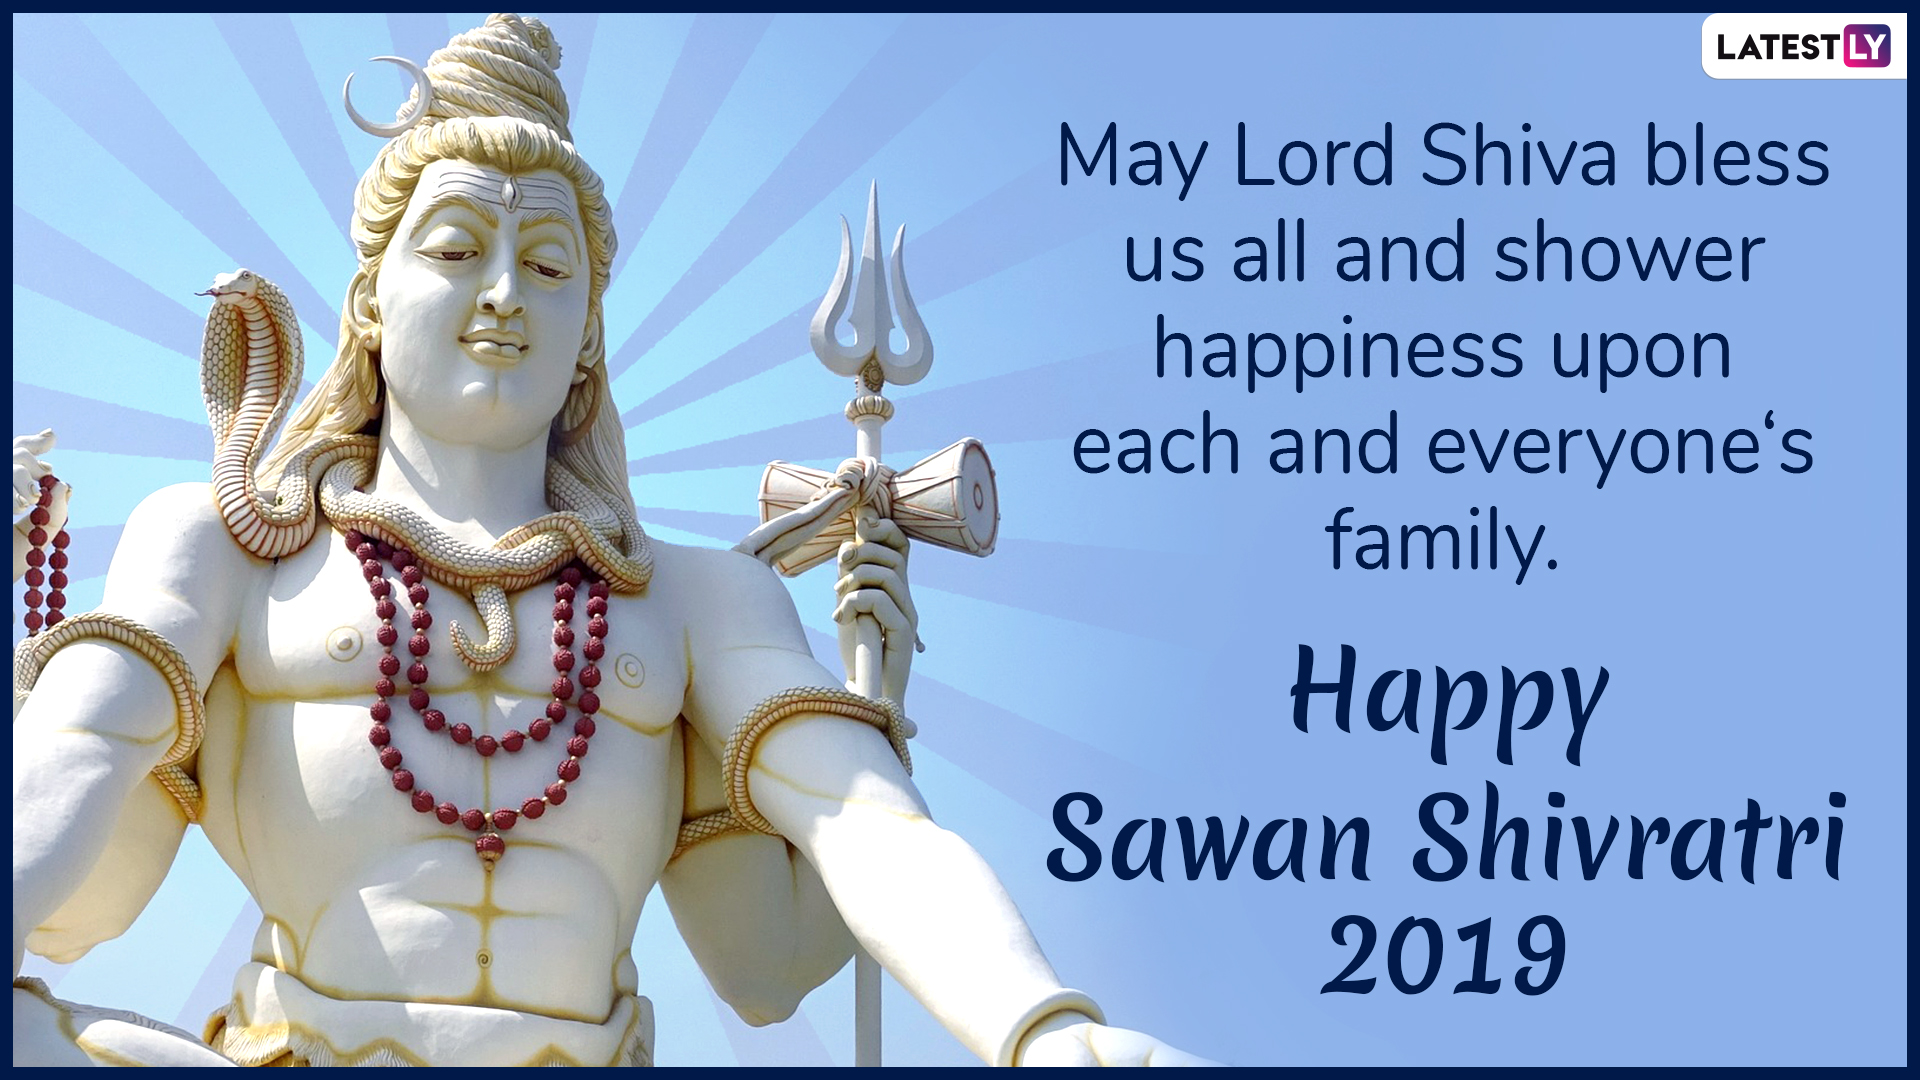 Sawan Shivratri 2019 Wishes and Messages: Facebook Greetings